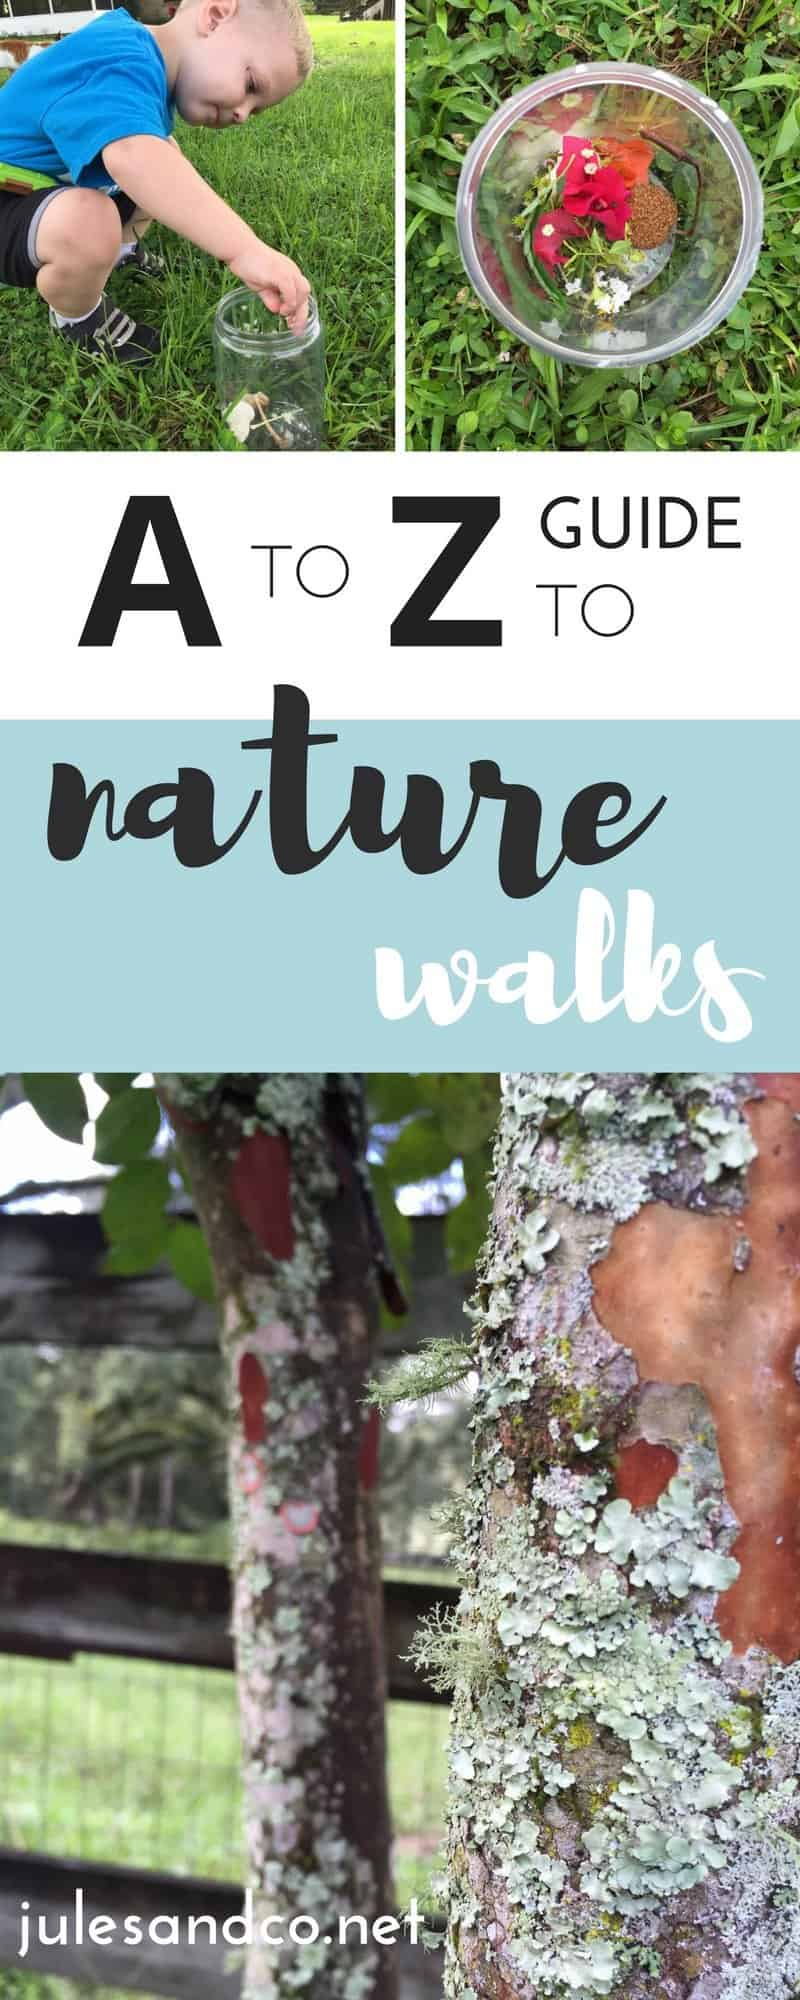 I can't wait to hear how much fun you have with nature walks.